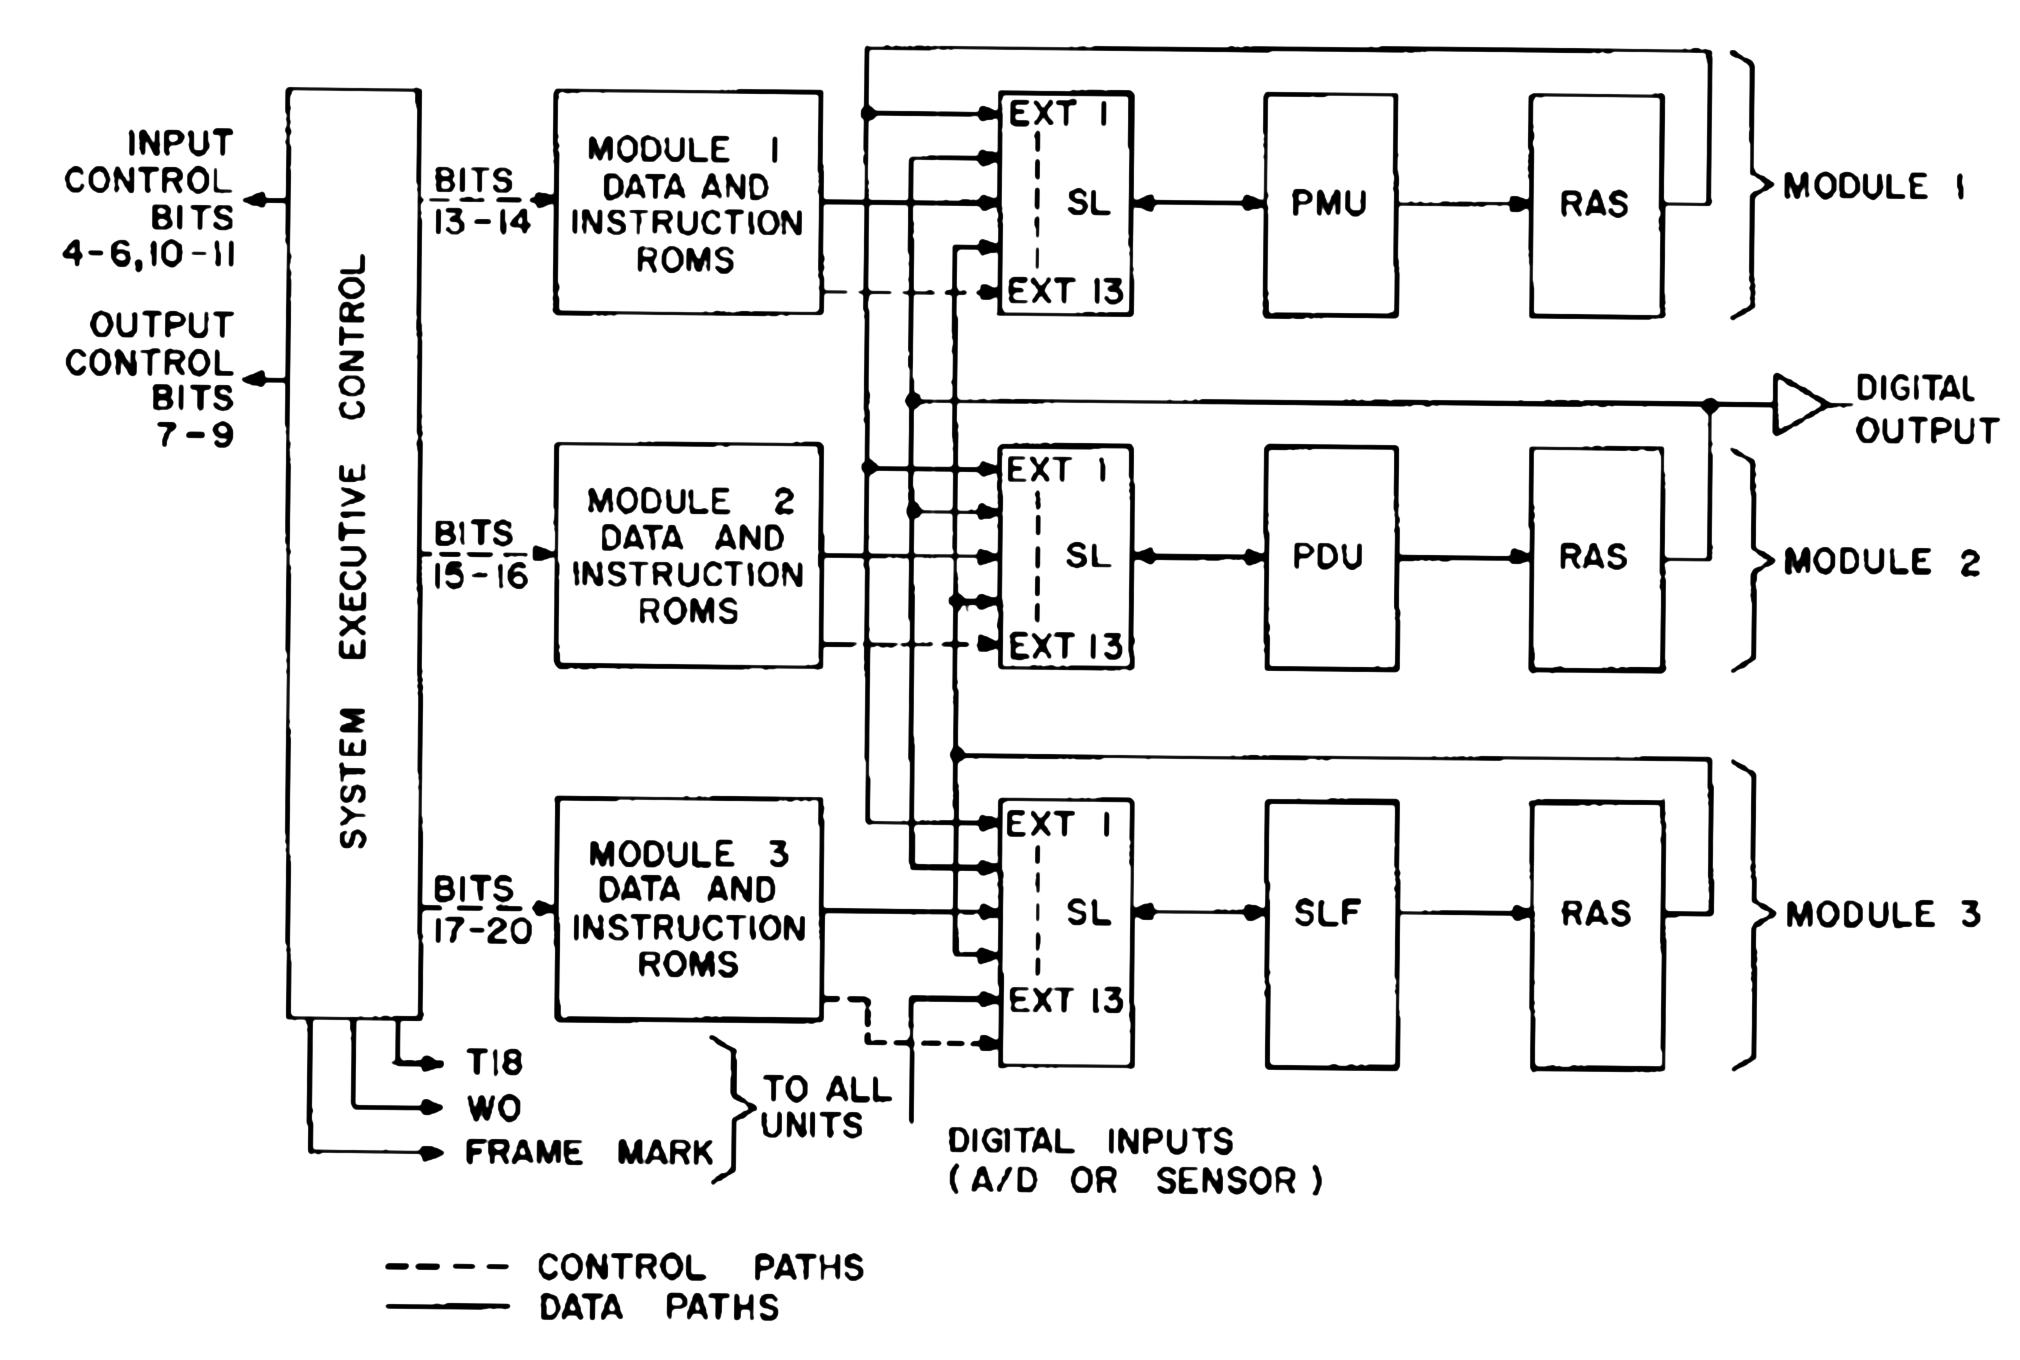 The Texas Instruments Tmx 1795 Almost First Forgotten Electronic Shock Sensor Free Circuits 8085 Projects Block Diagram Of F14a Cadc Computer From Architecture A Microprocessor